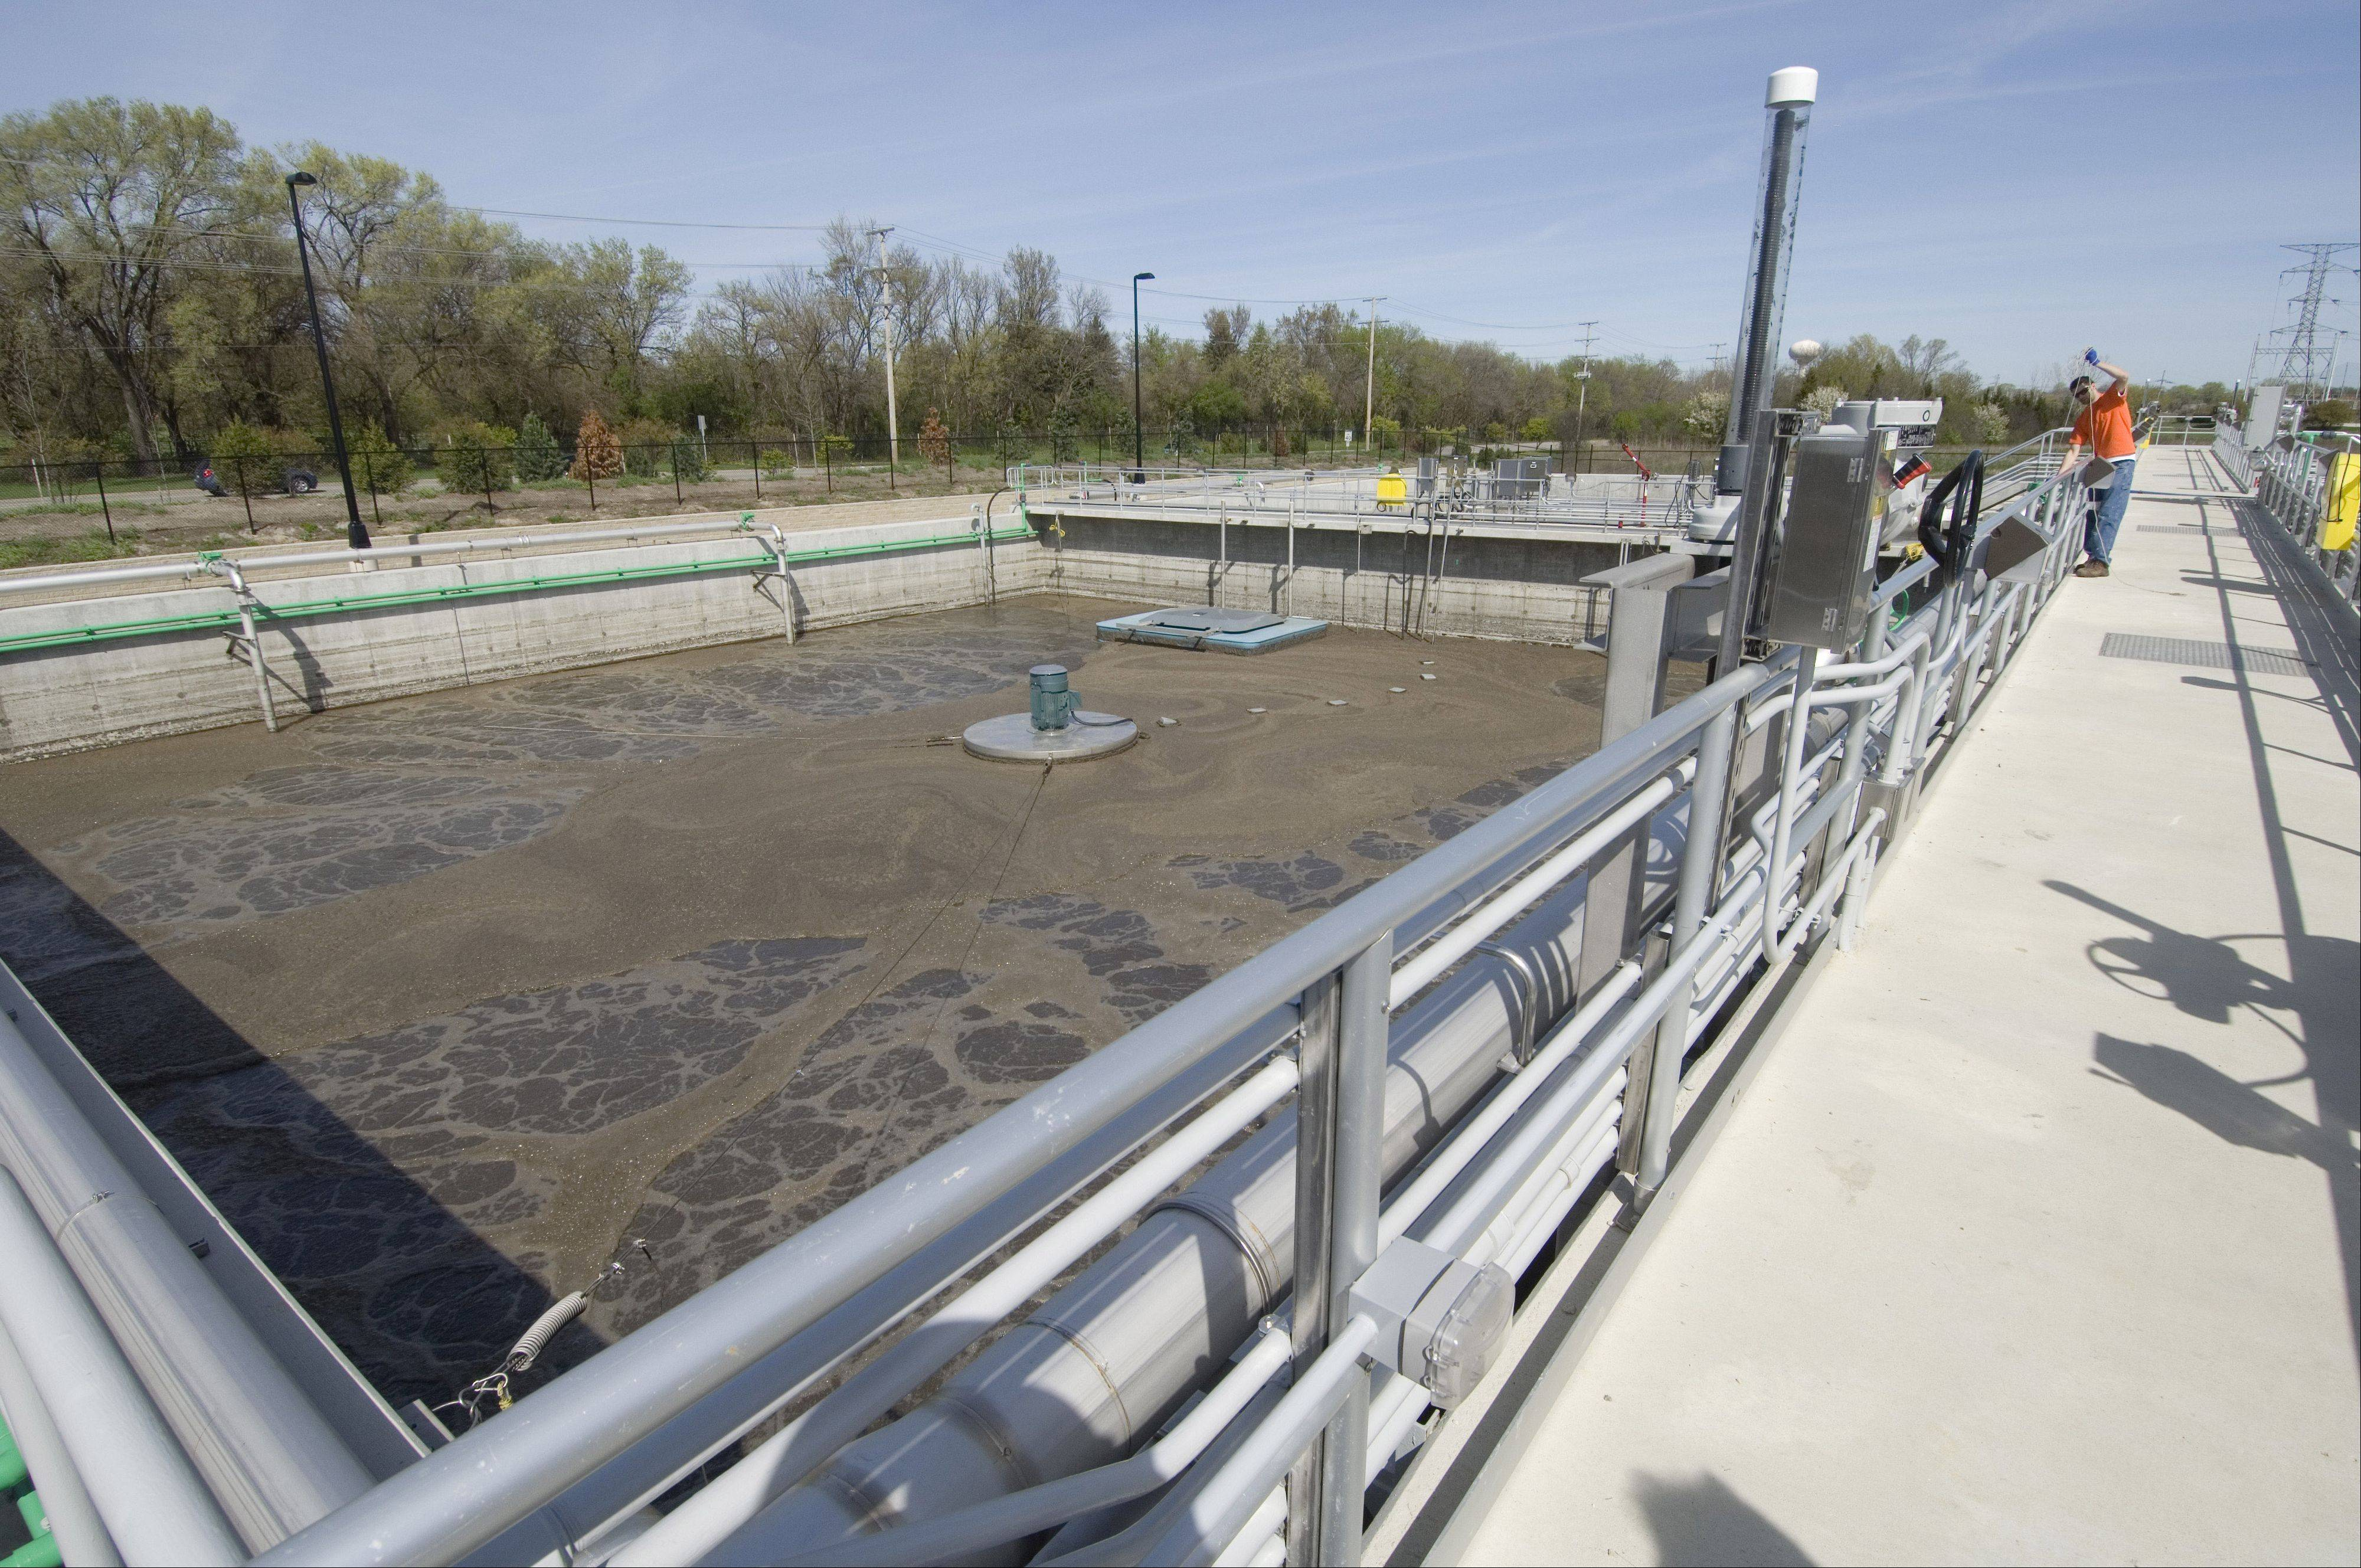 ITASCA: $9,690 PER RESIDENT. Officials said the village's high per capita debt is a result of borrowing to construct a new wastewater treatment plant.